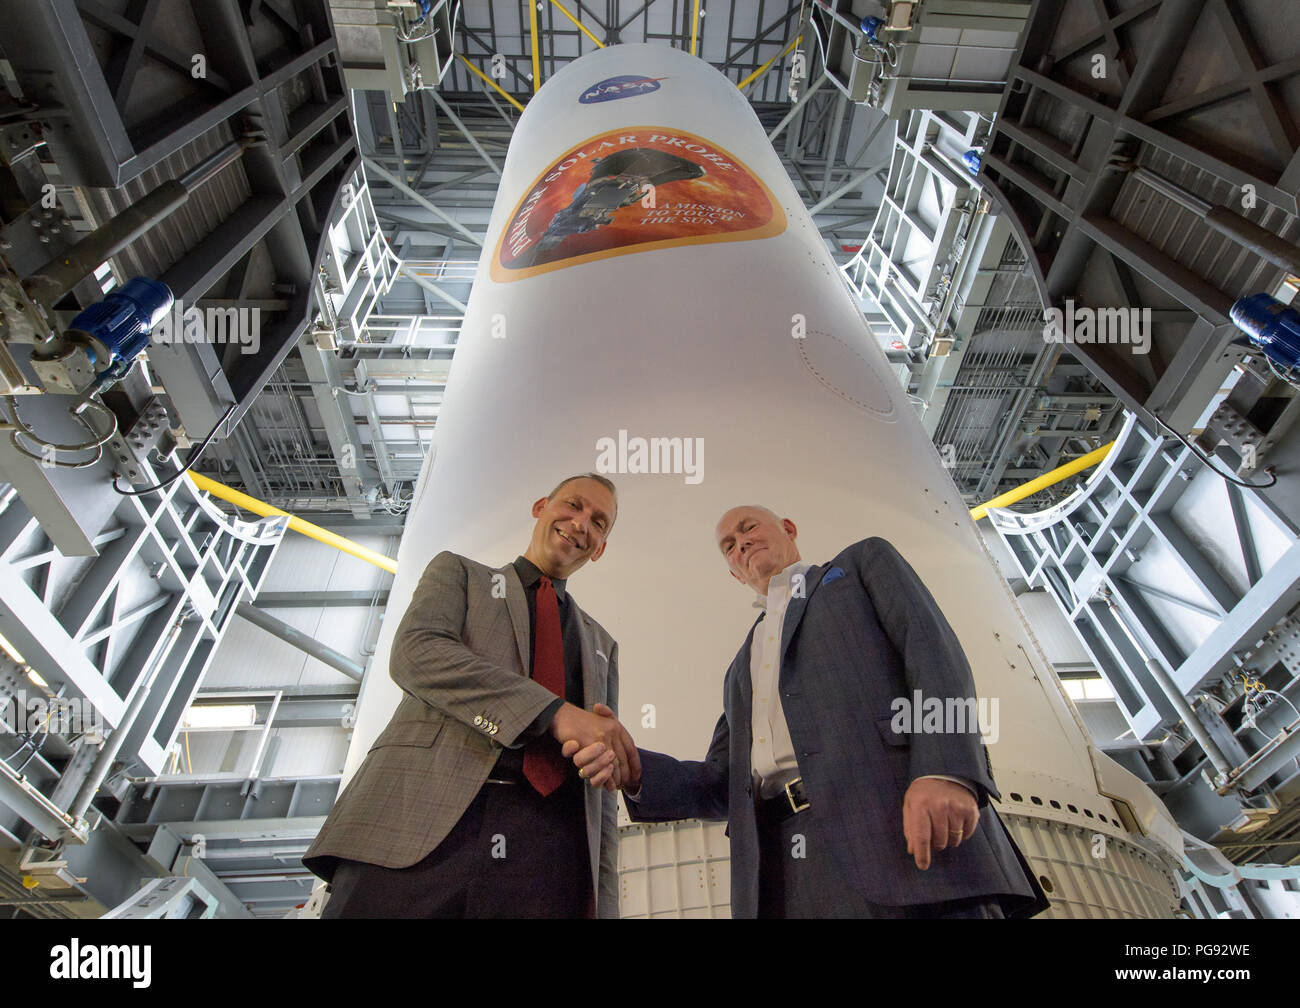 NASA Associate Administrator for the Science Mission Directorate Thomas Zurbuchen, left, and President and Chief Executive Officer for United Launch Alliance Tory Bruno shake hands after viewing the ULA Delta IV Heavy rocket with NASA's Parker Solar onboard, Friday, Aug. 10, 2018, Launch Complex 37 at Cape Canaveral Air Force Station, Florida. This is the first NASA mission that has been named for a living individual. Parker Solar Probe is humanity's first-ever mission into a part of the Sun's atmosphere called the corona.  Here it will directly explore solar processes that are key to understa - Stock Image